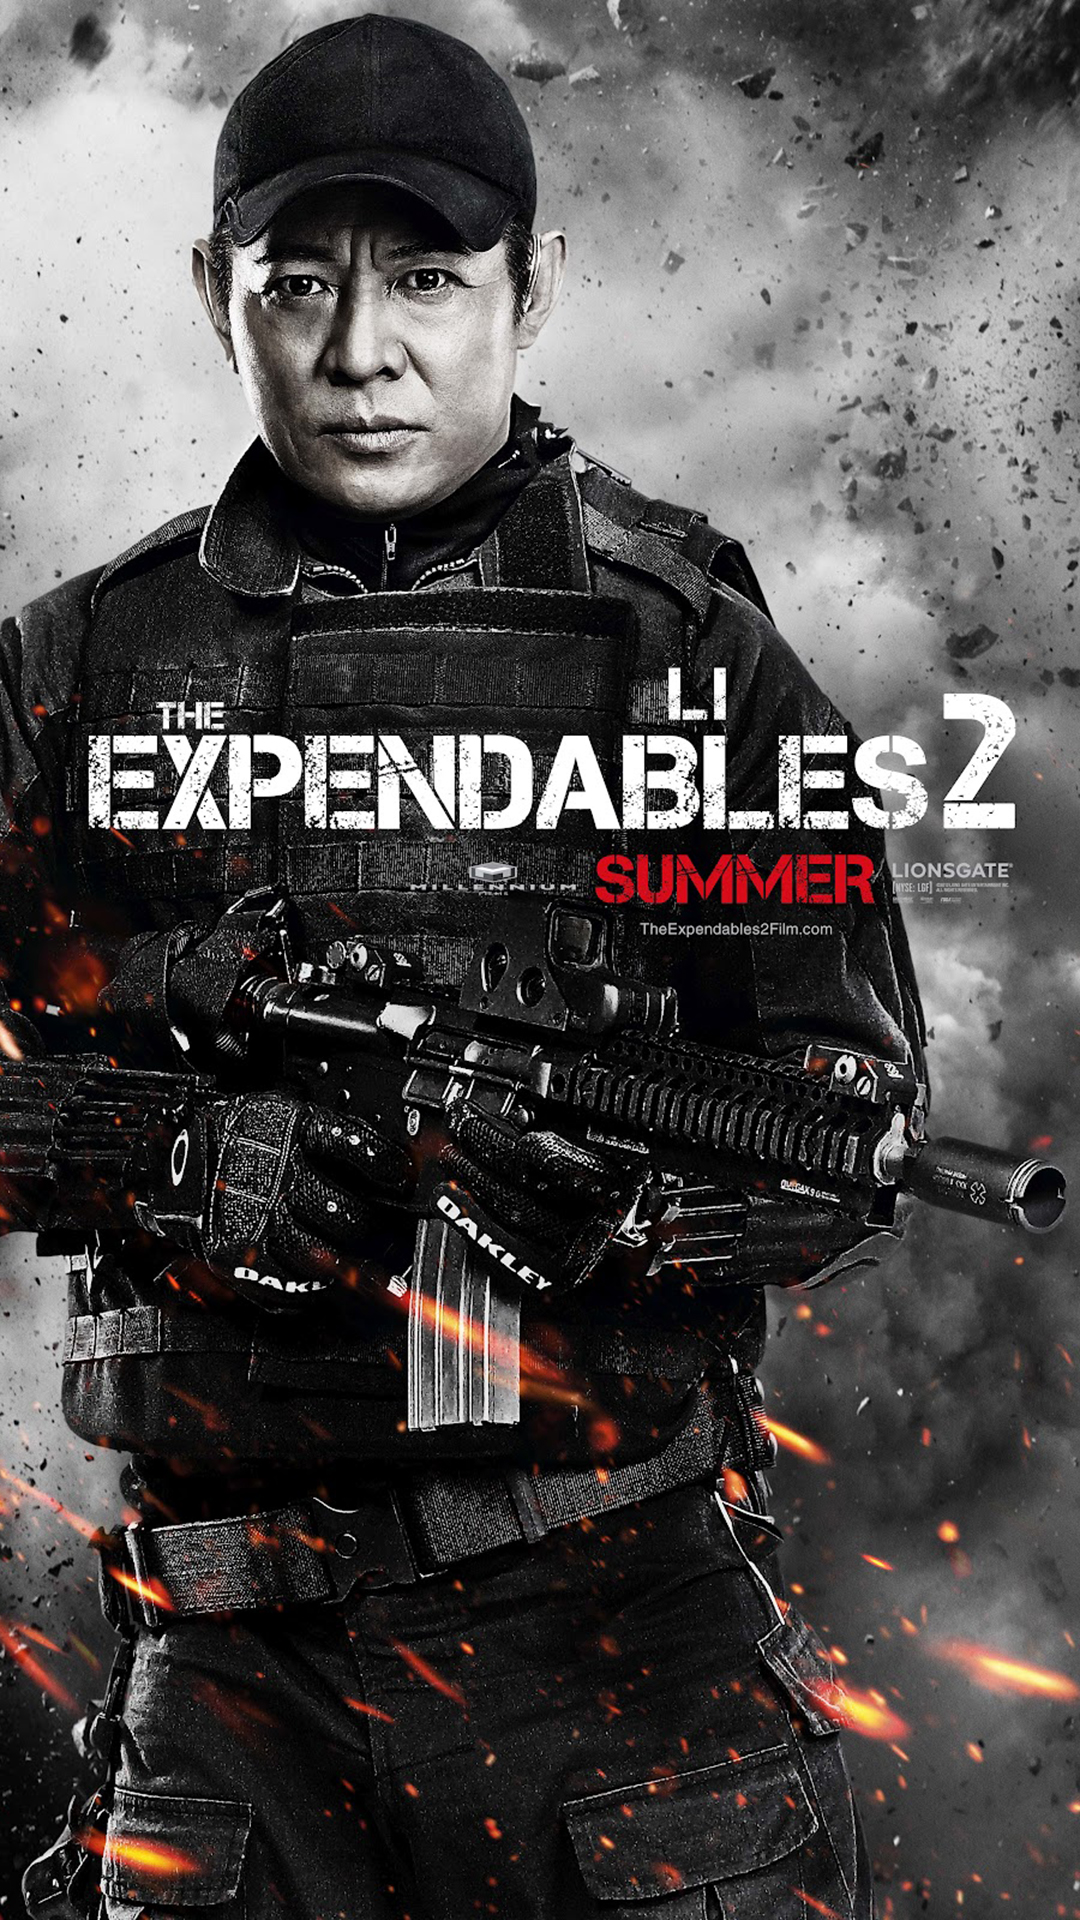 jet li the expendables 2 - best htc one wallpapers, free and easy to